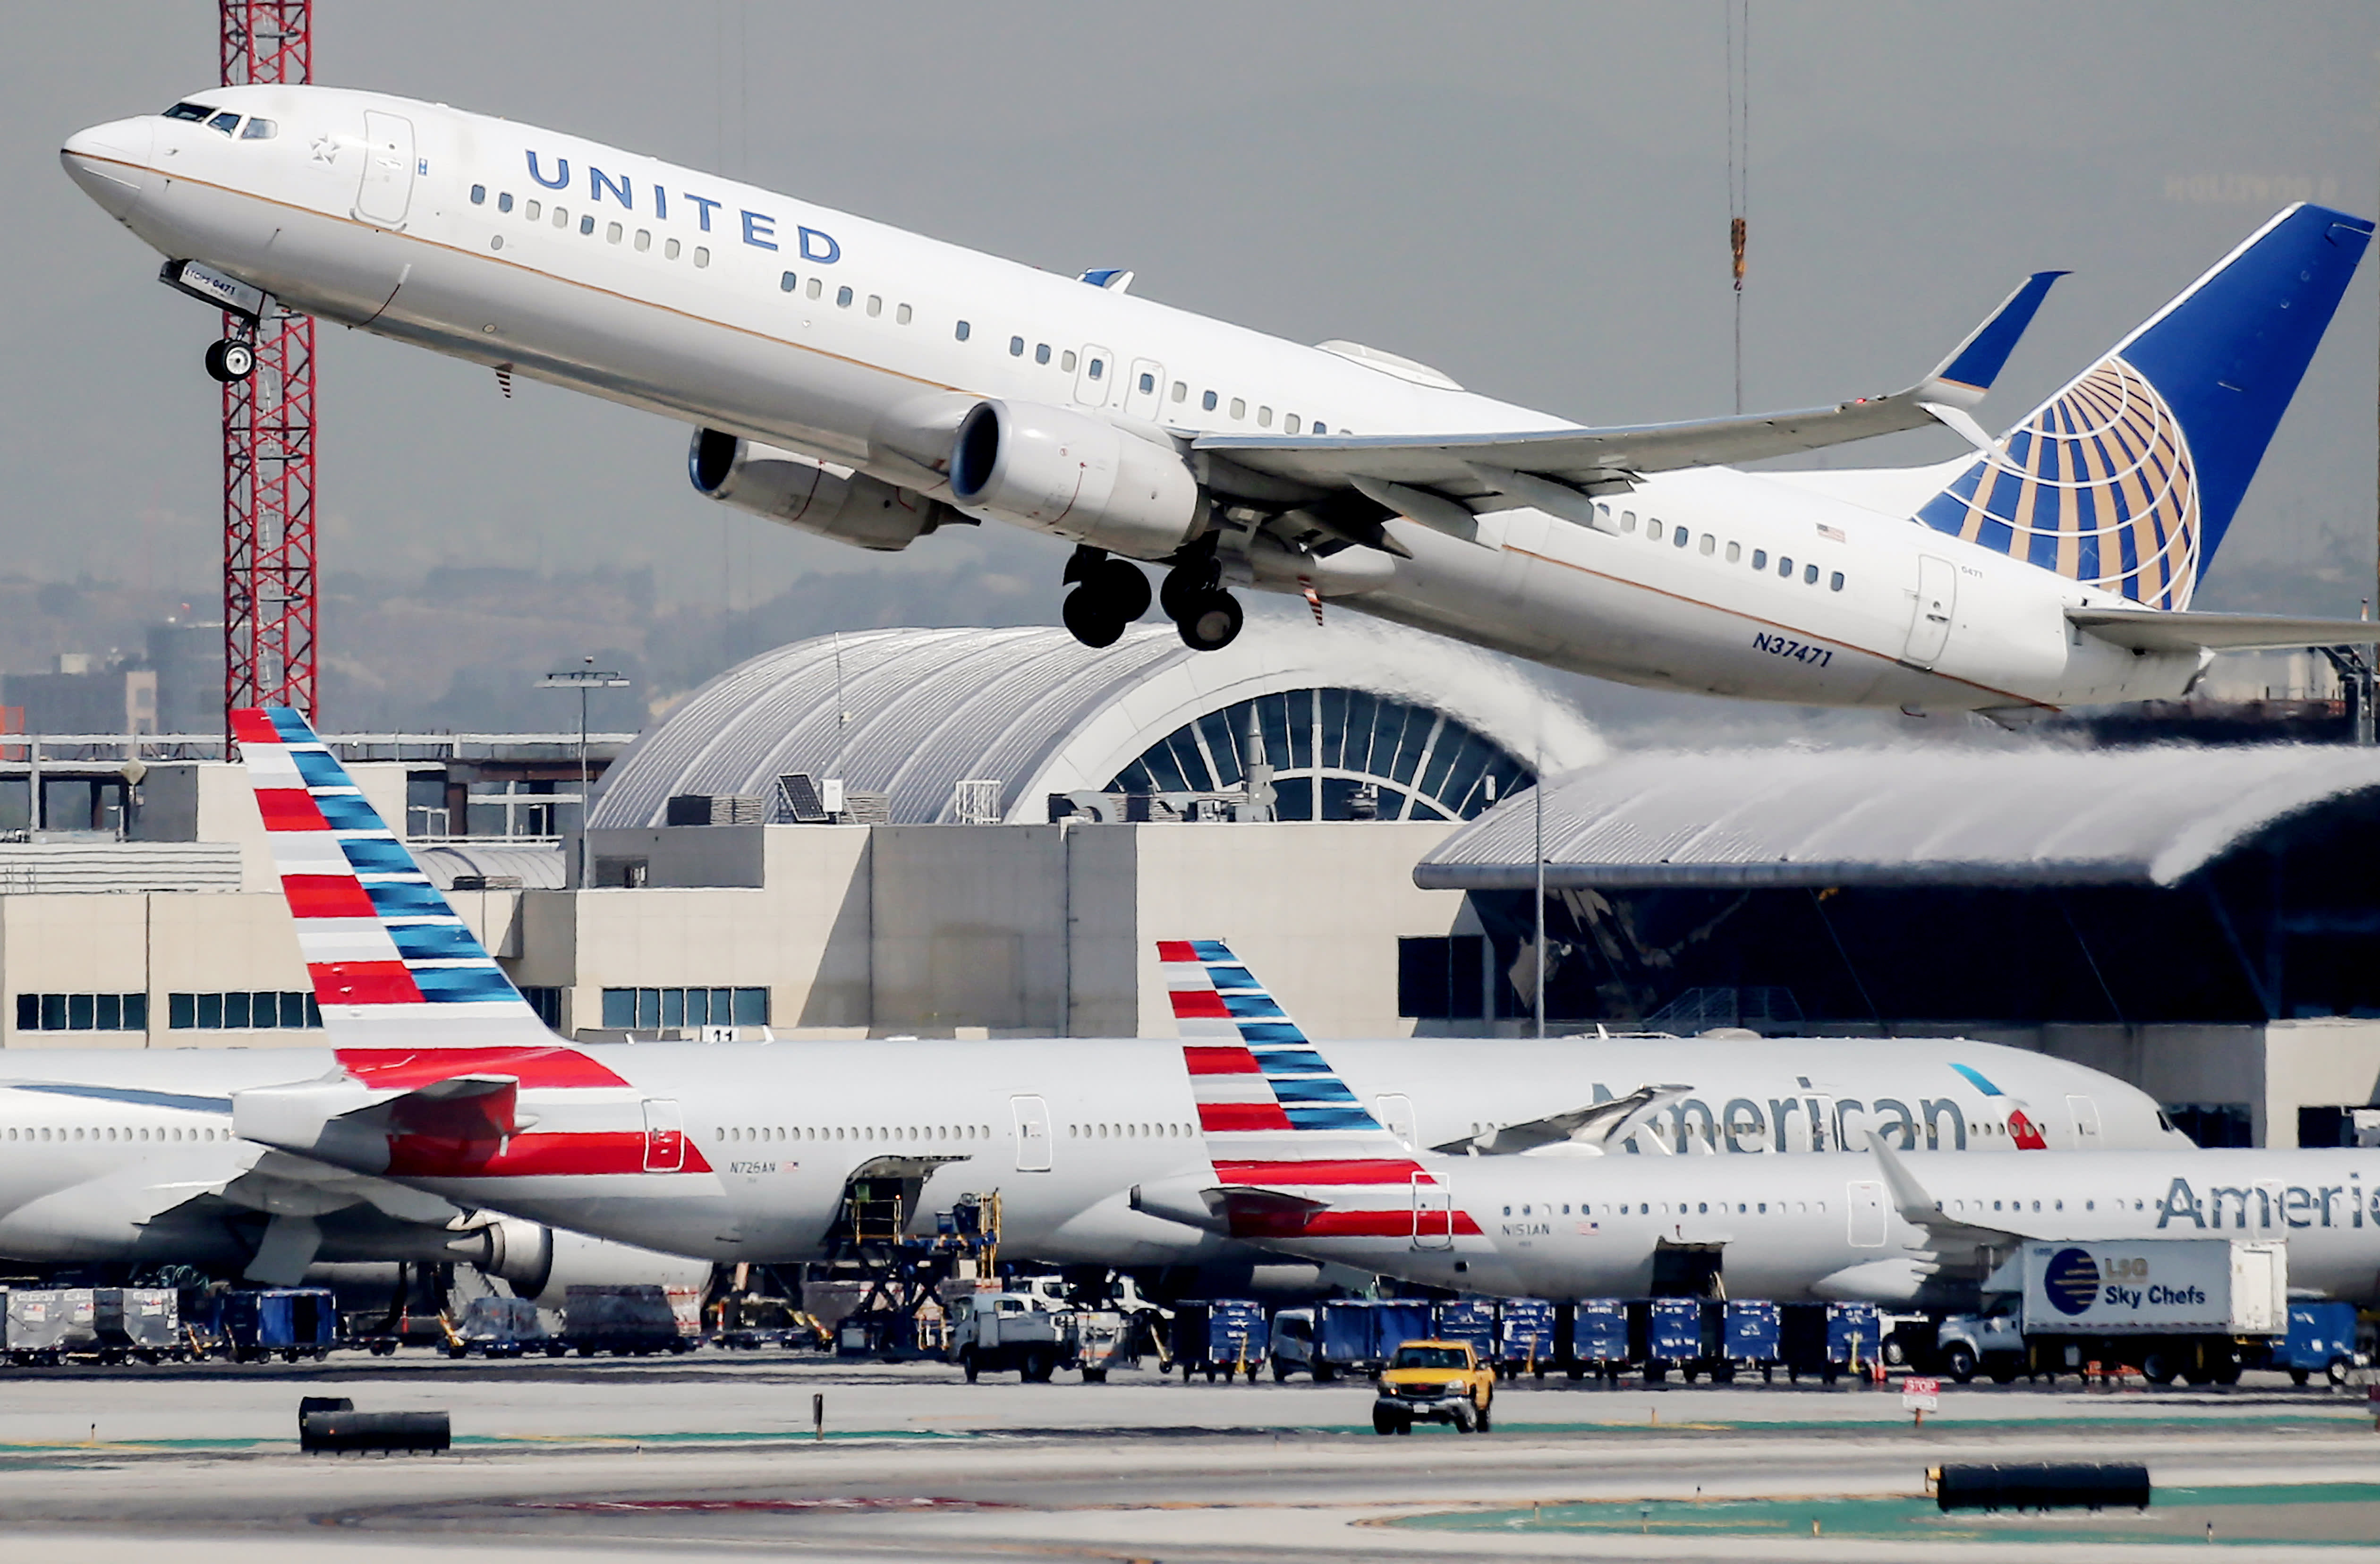 U.S. airline employment to reach lowest levels in decades after pandemic cuts 90,000 jobs